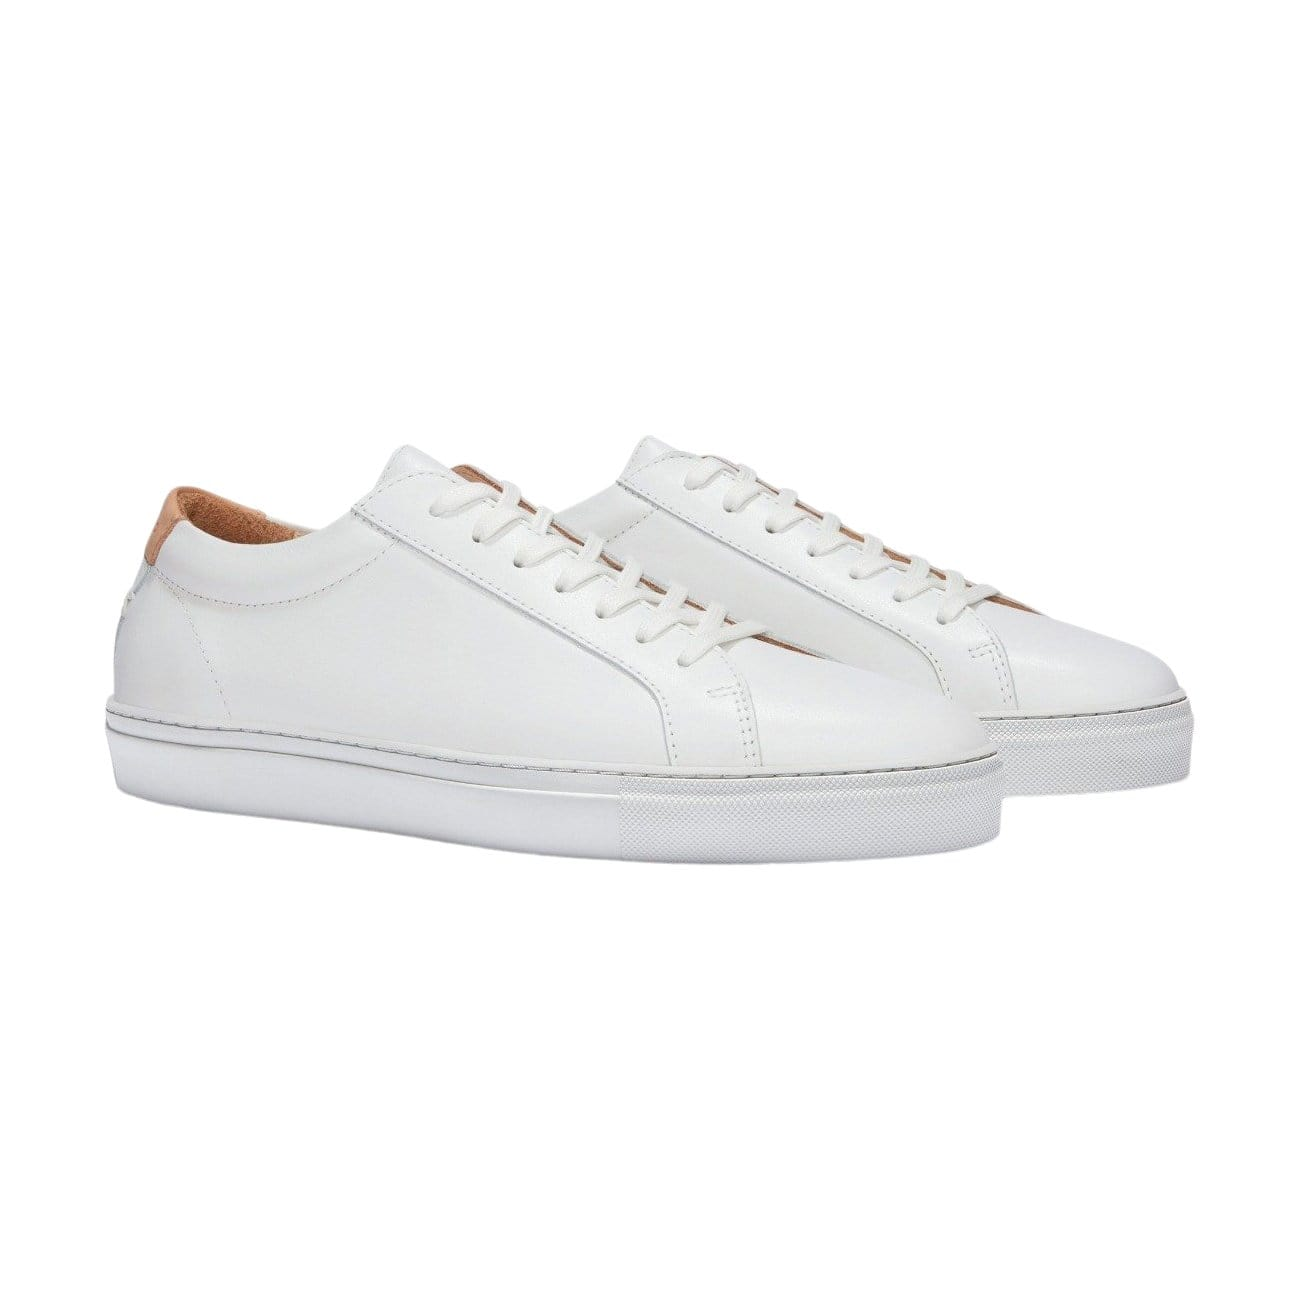 Women's SERIES 1 White Leather Sneaker